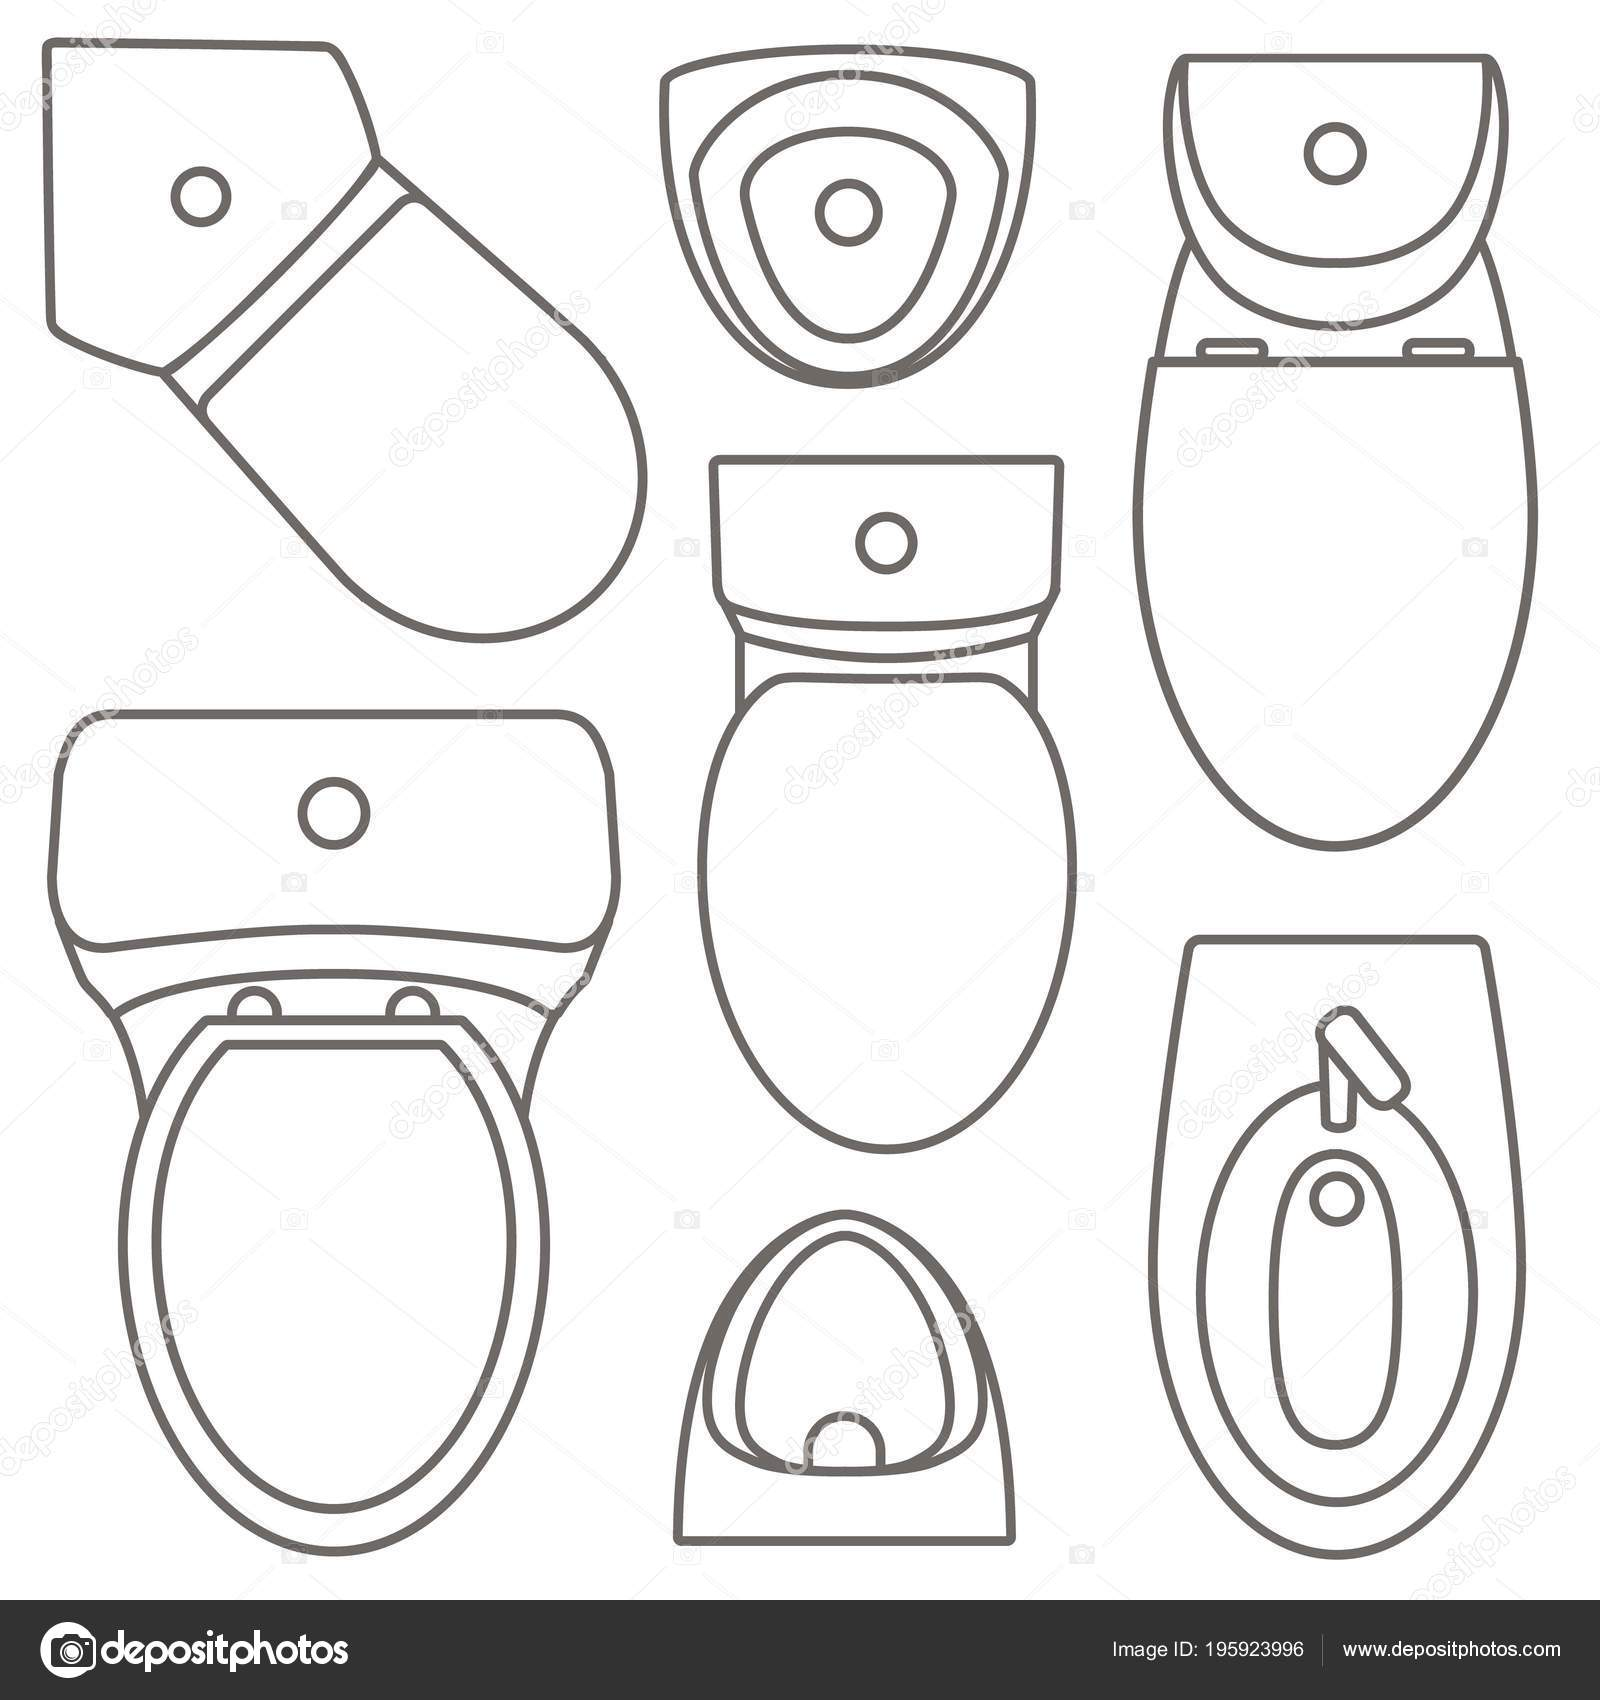 Toilet Equipment Top View Collection For Interior Design Vector